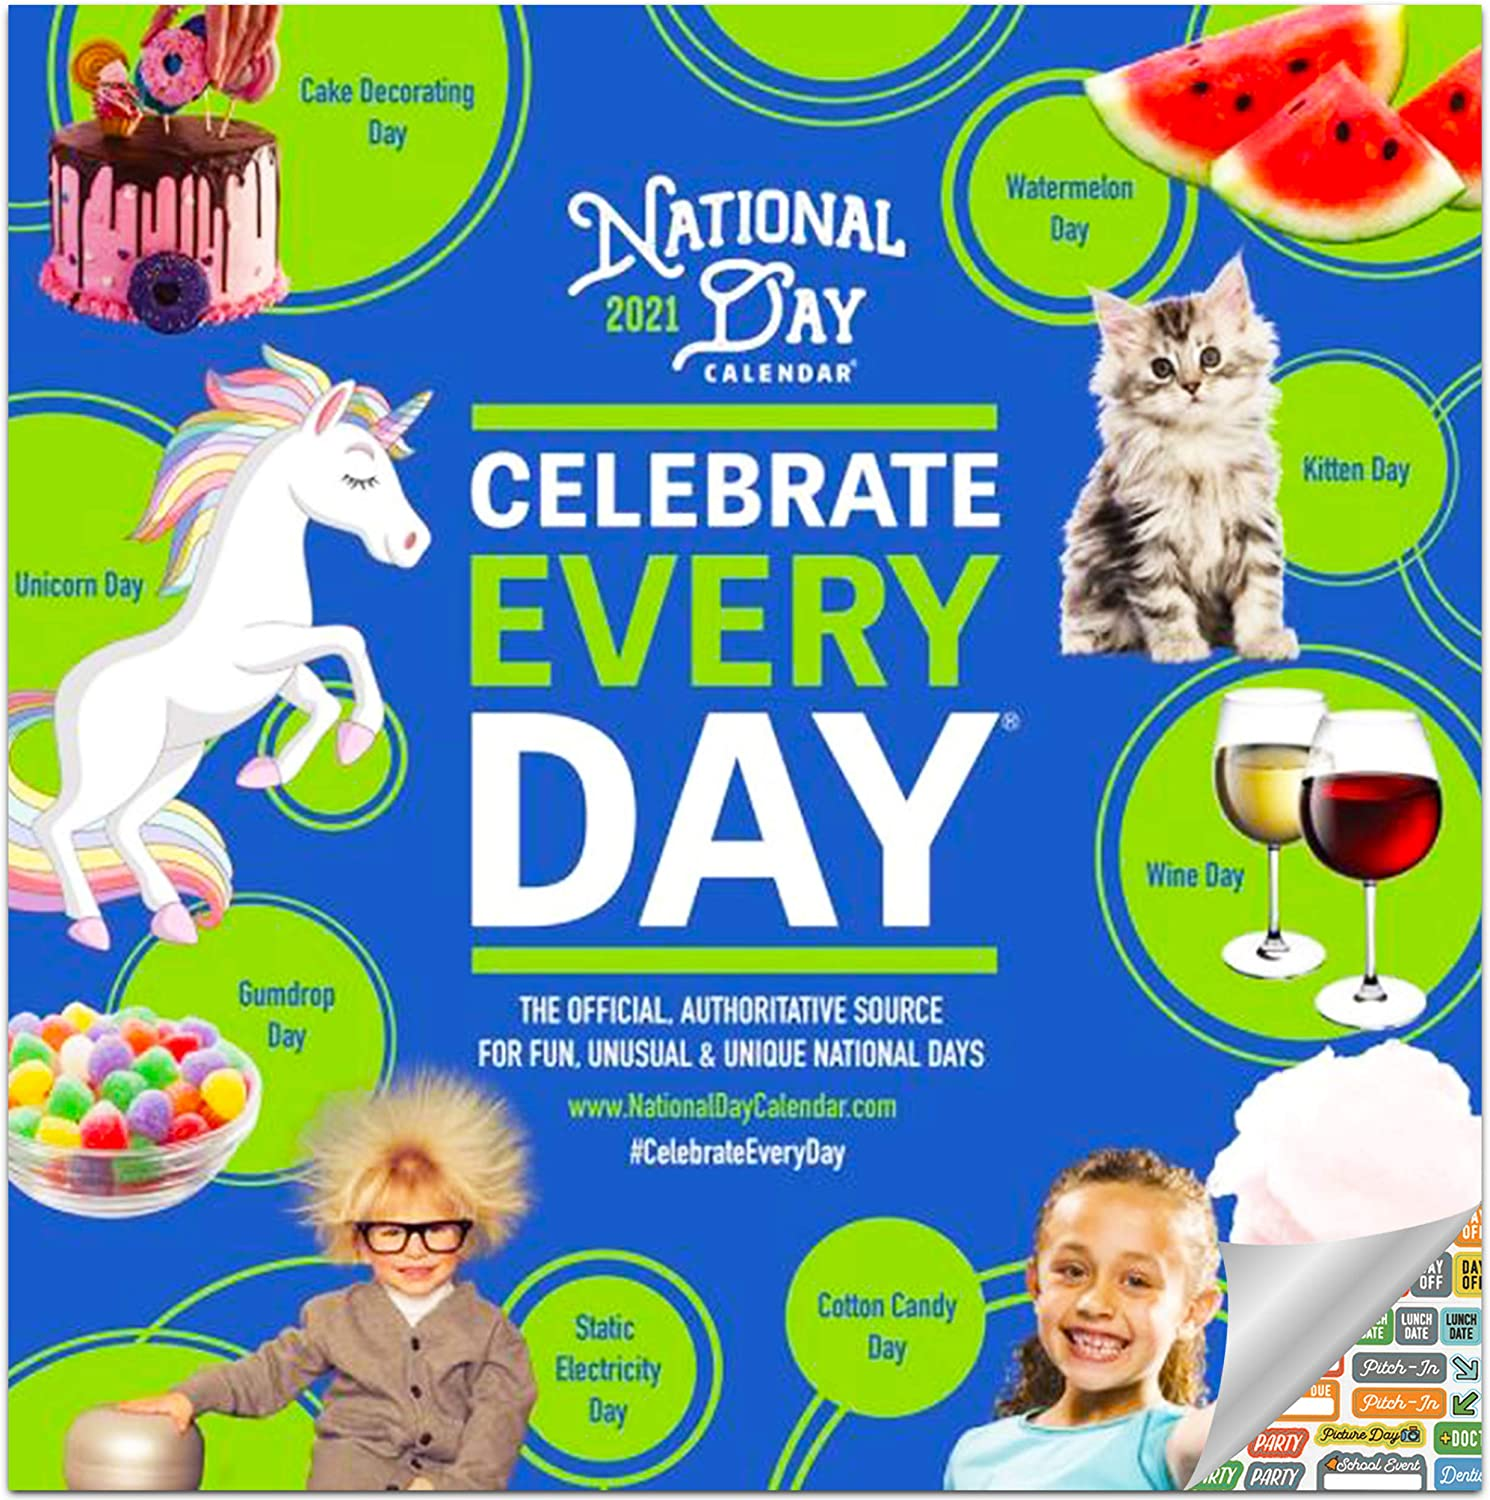 National Day Calendar 2021 Bundle - Deluxe 2021 National Day Wall Calendar with Over 100 Calendar Stickers (Every Day's a Holiday Day Gifts, Office Supplies)